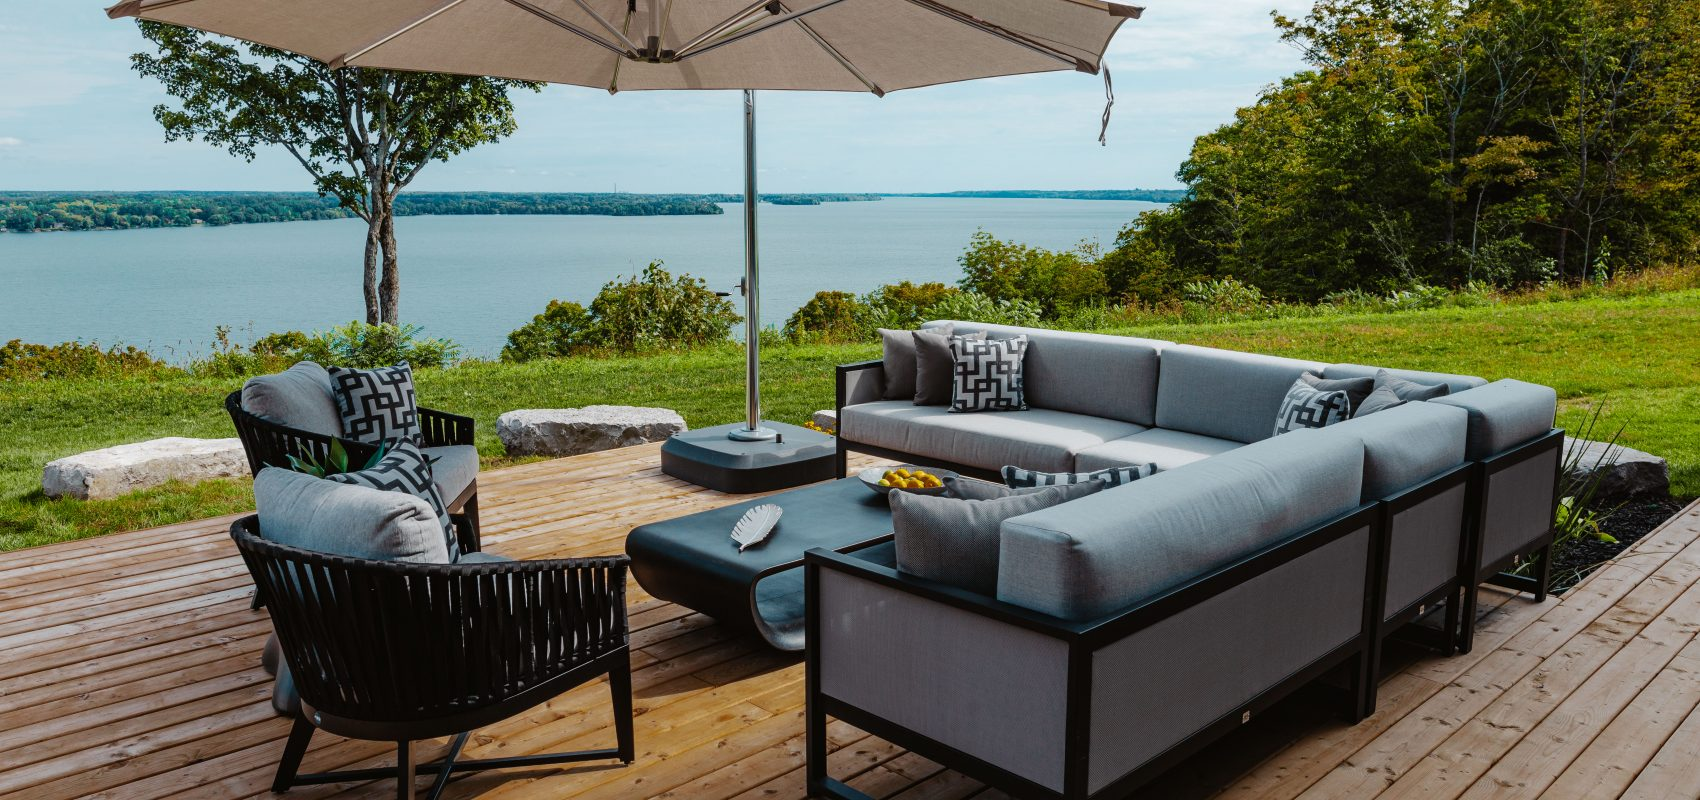 Ard Outdoor Toronto Furniture